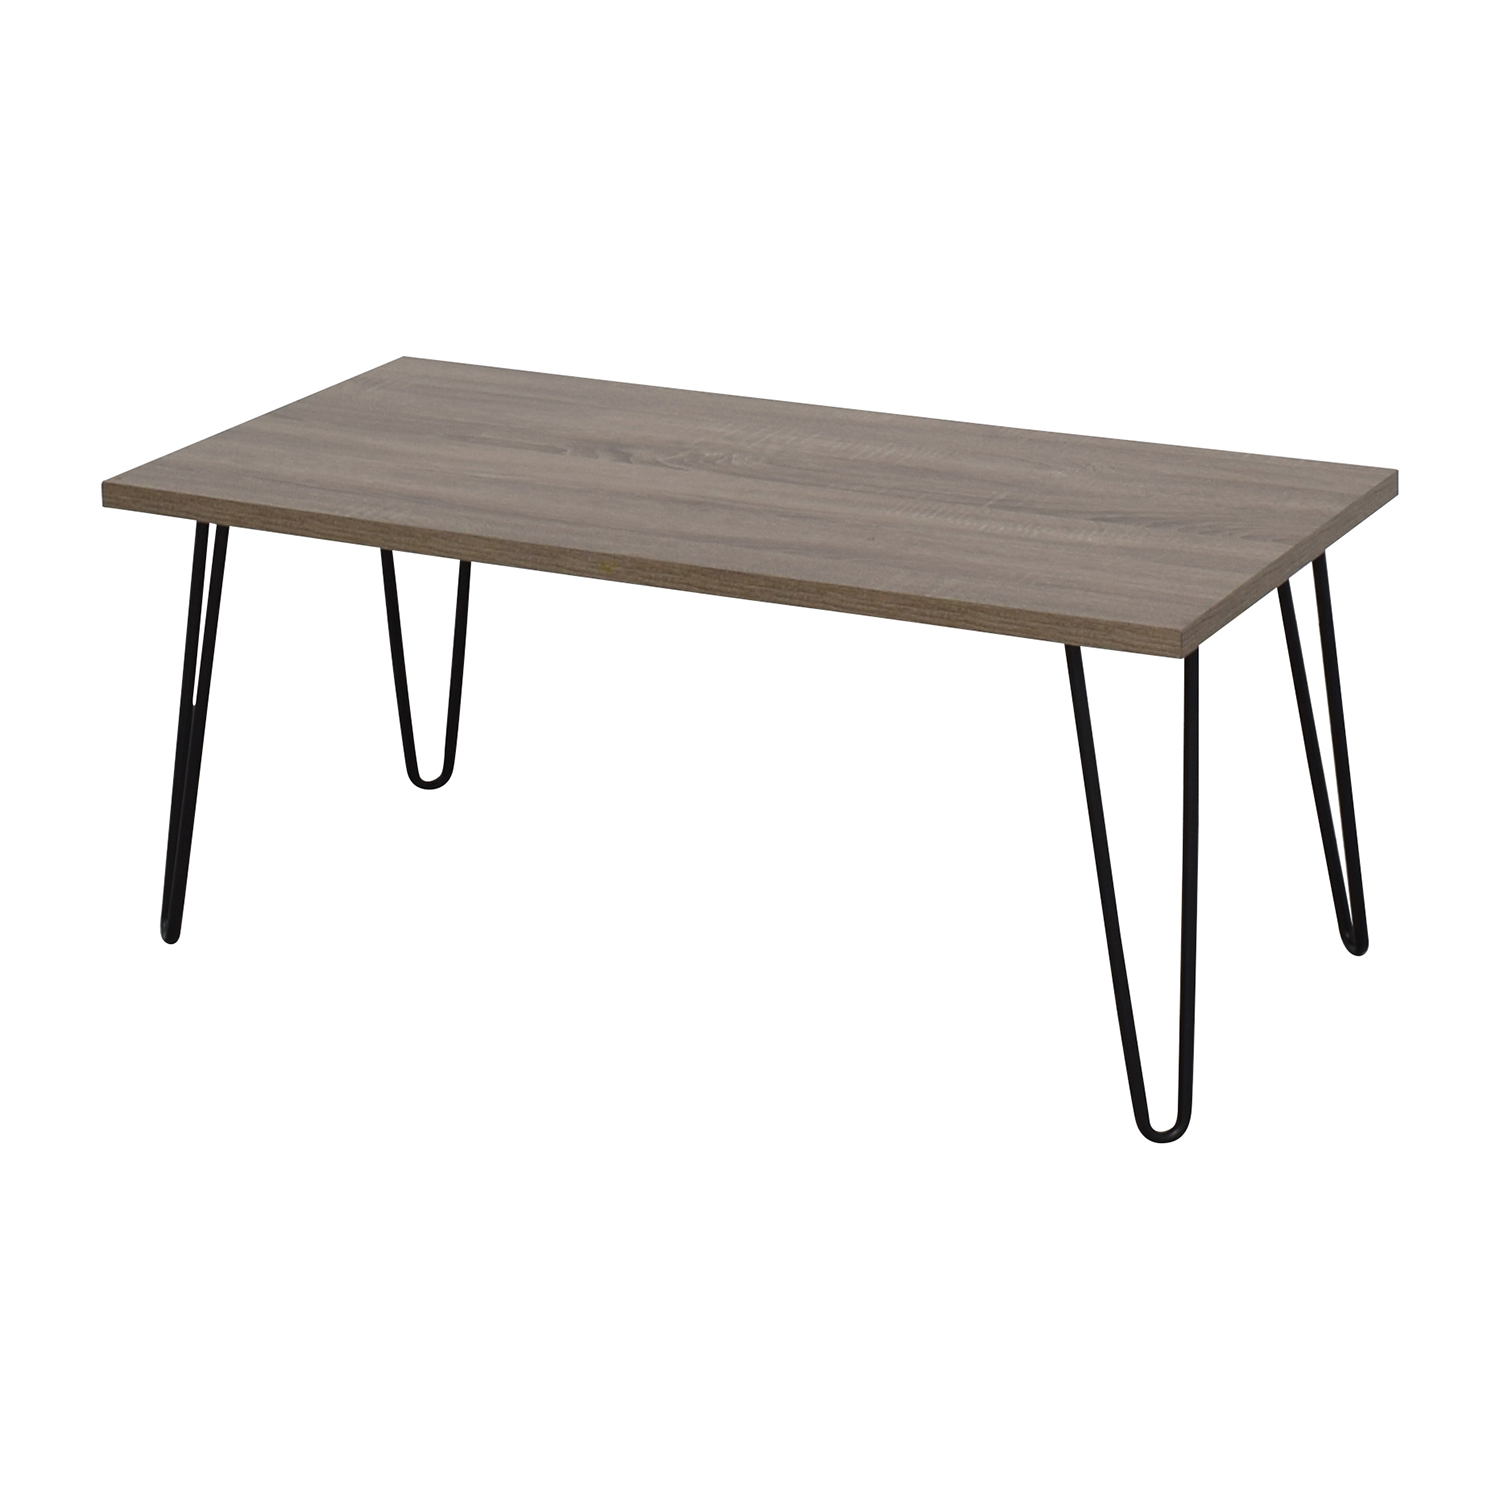 54% OFF Altra Furniture Altra Furniture Owen Retro Coffee Table